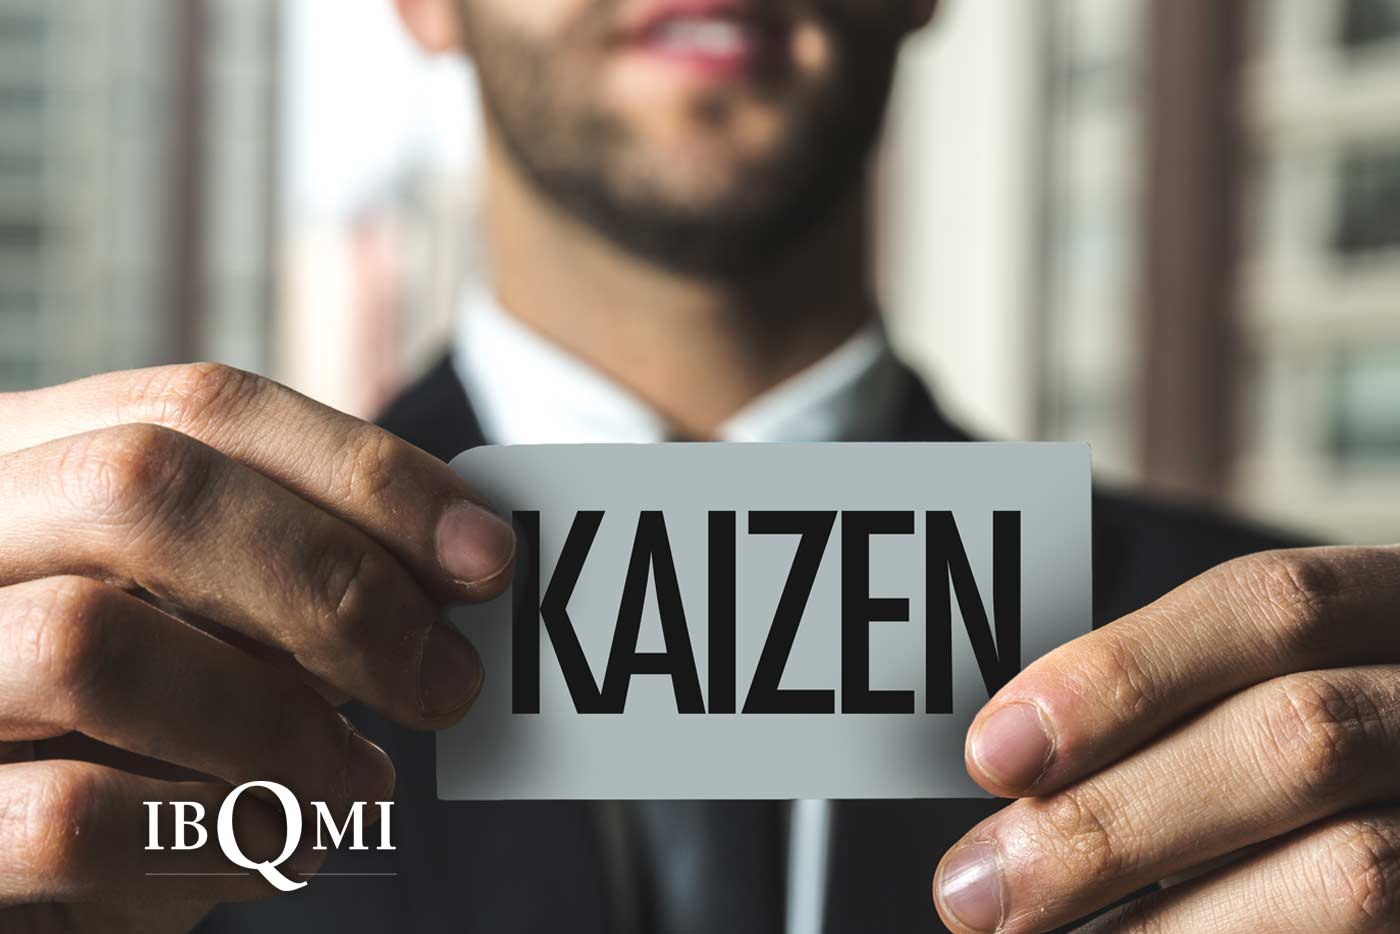 Relation between kaizen agility and the certified scrumban practitioner